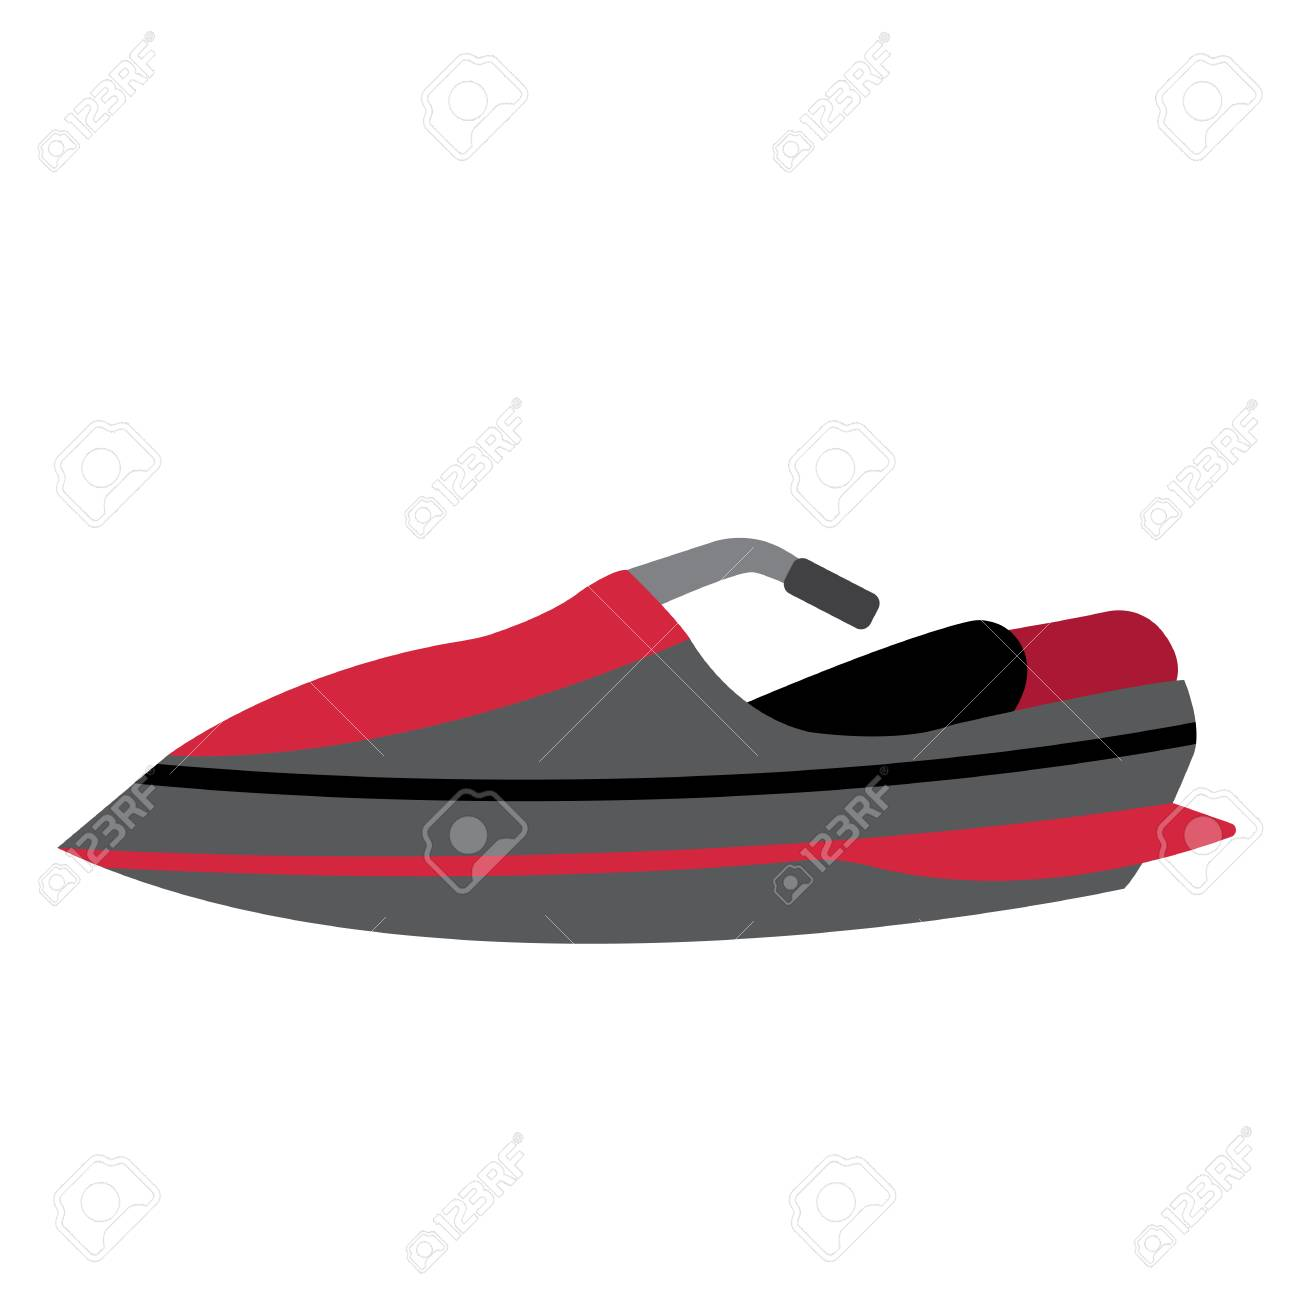 Jet Ski Transportation Cartoon Character Side View Isolated On Royalty Free Cliparts Vectors And Stock Illustration Image 101595811